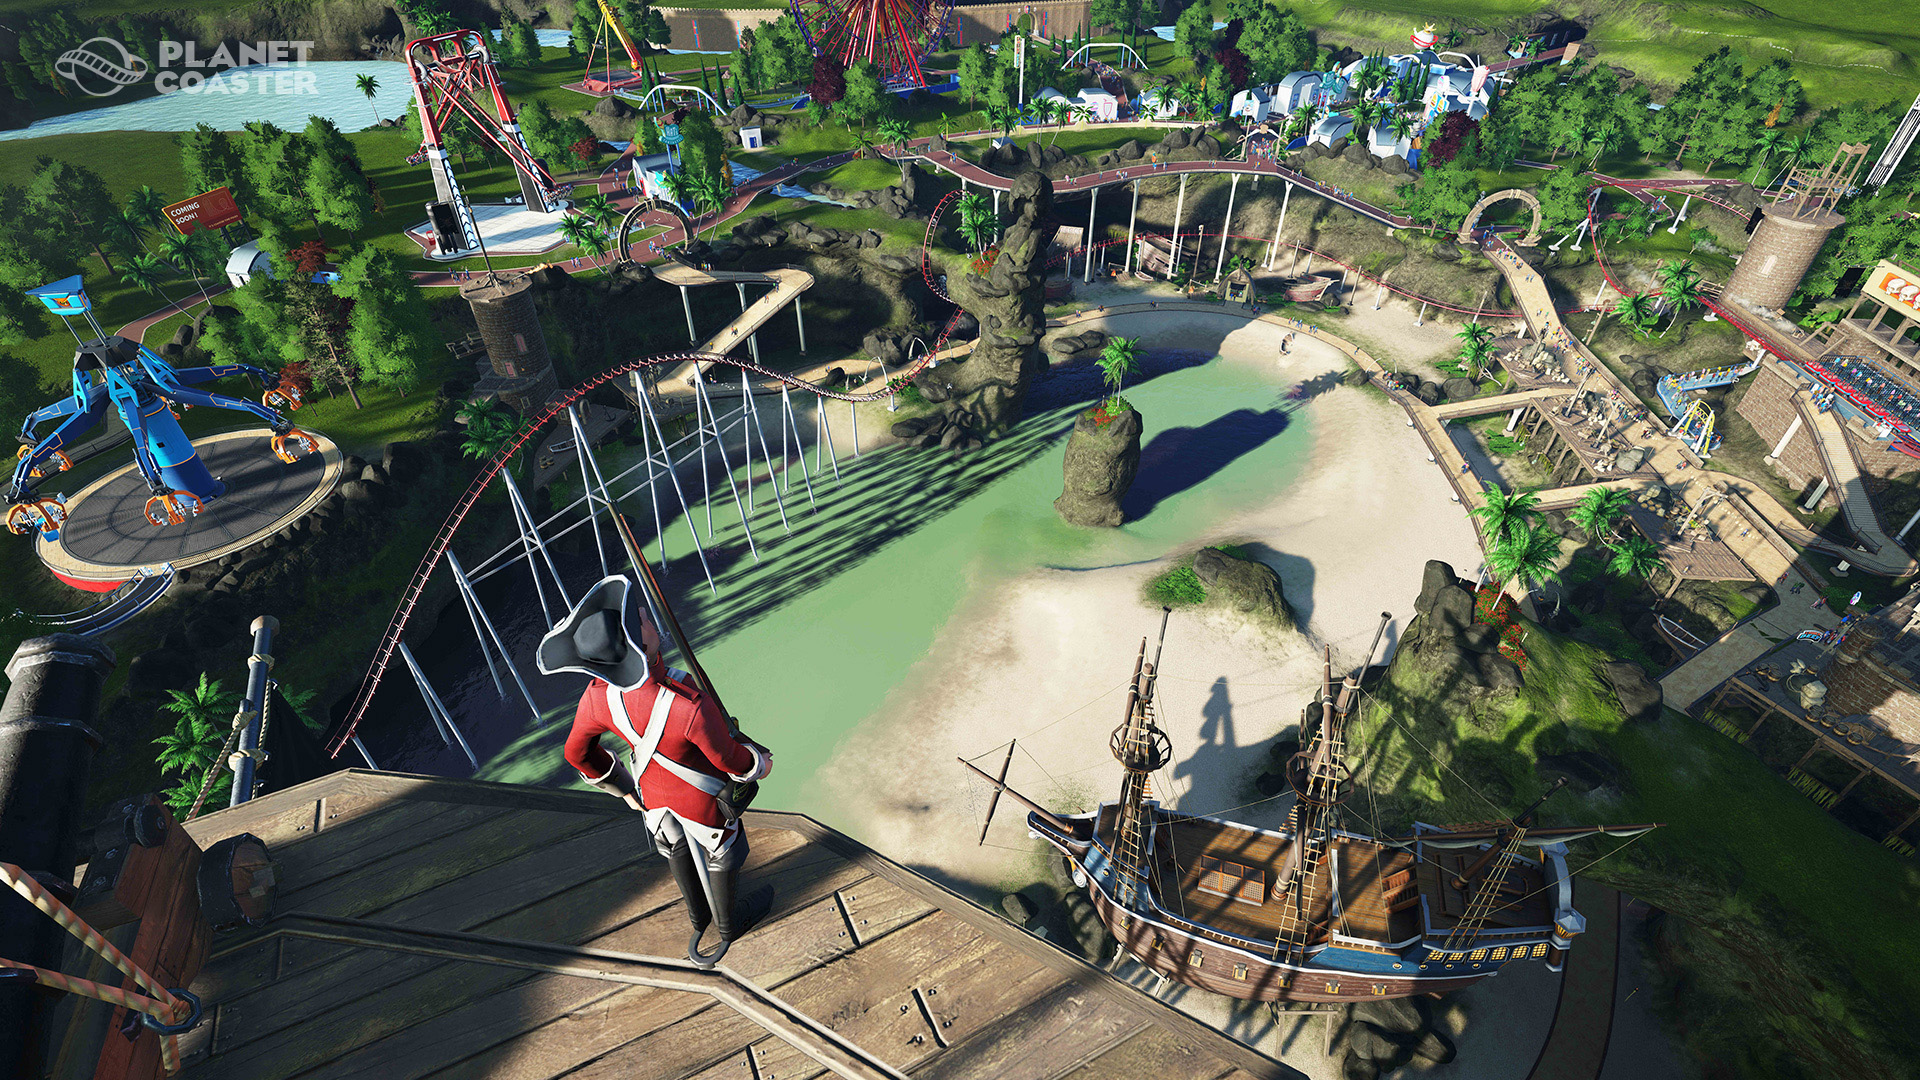 See RollerCoaster Tycoon-Inspired Planet Coaster In Action